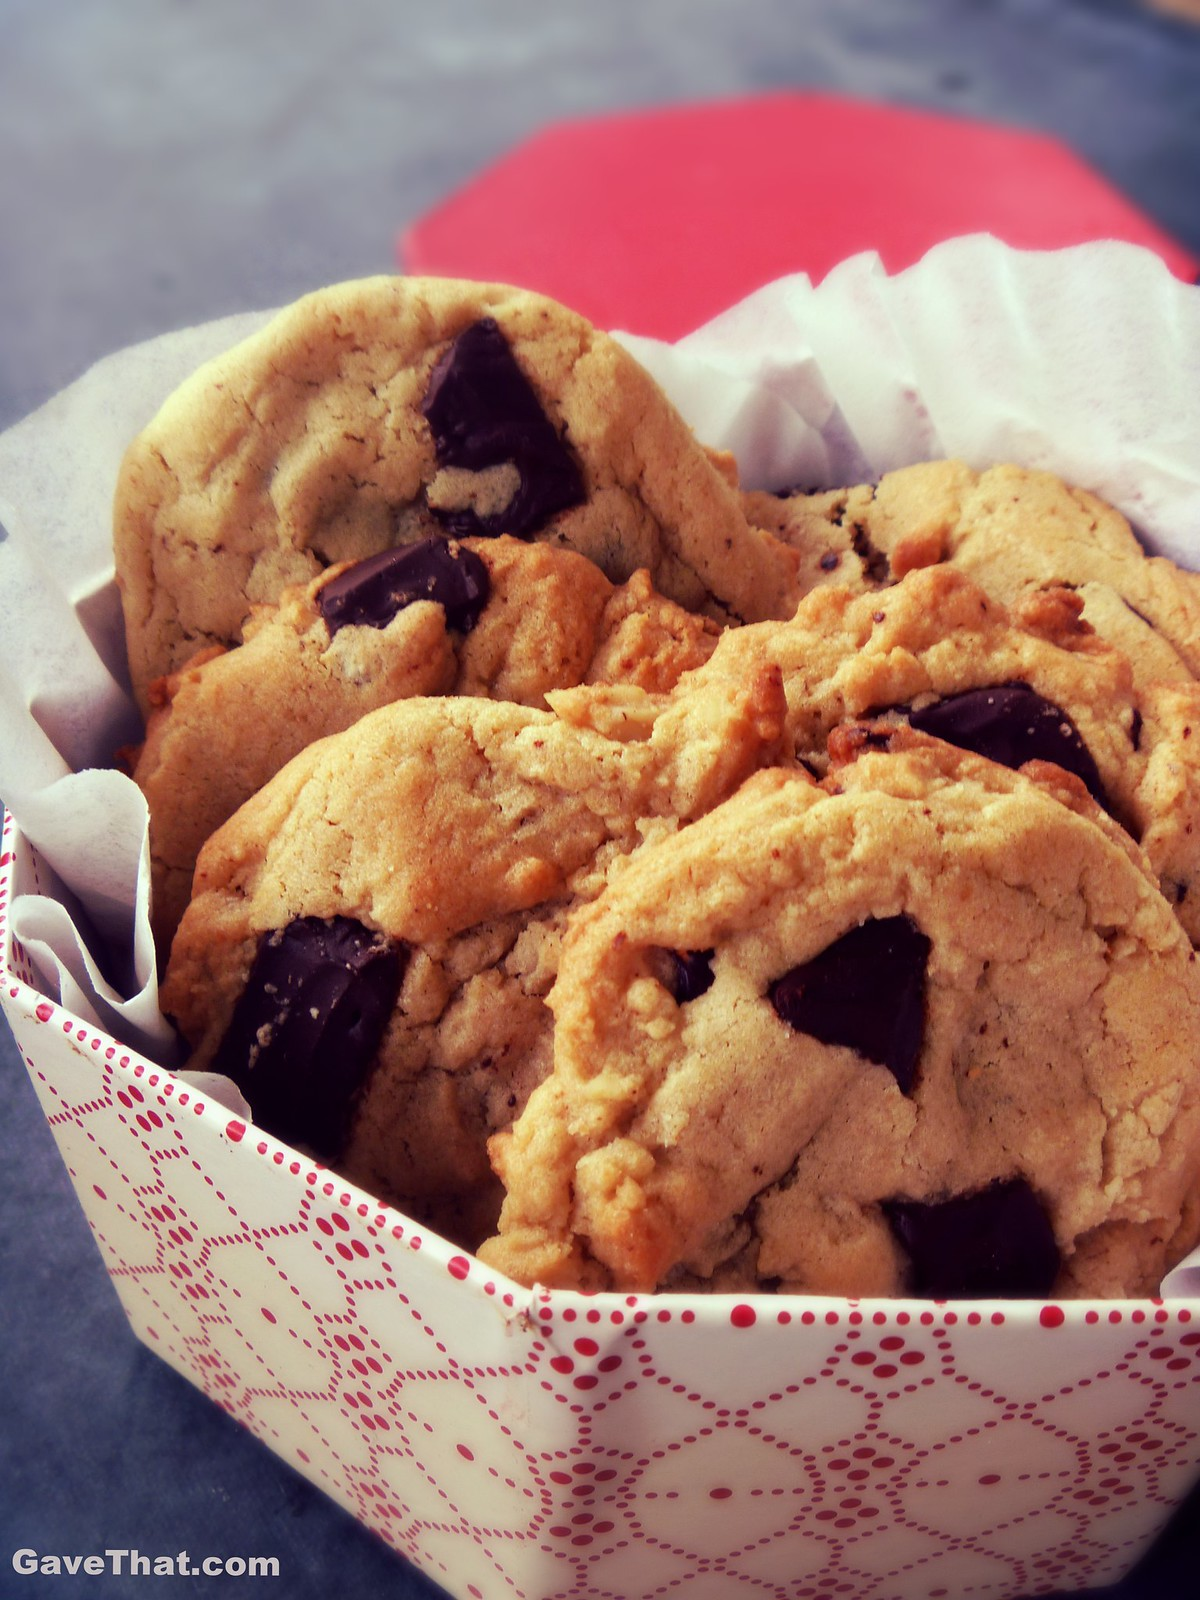 Gourmet Thick Chewy Chocolate Peanut butter Chunk Cookies with the Recipe Below